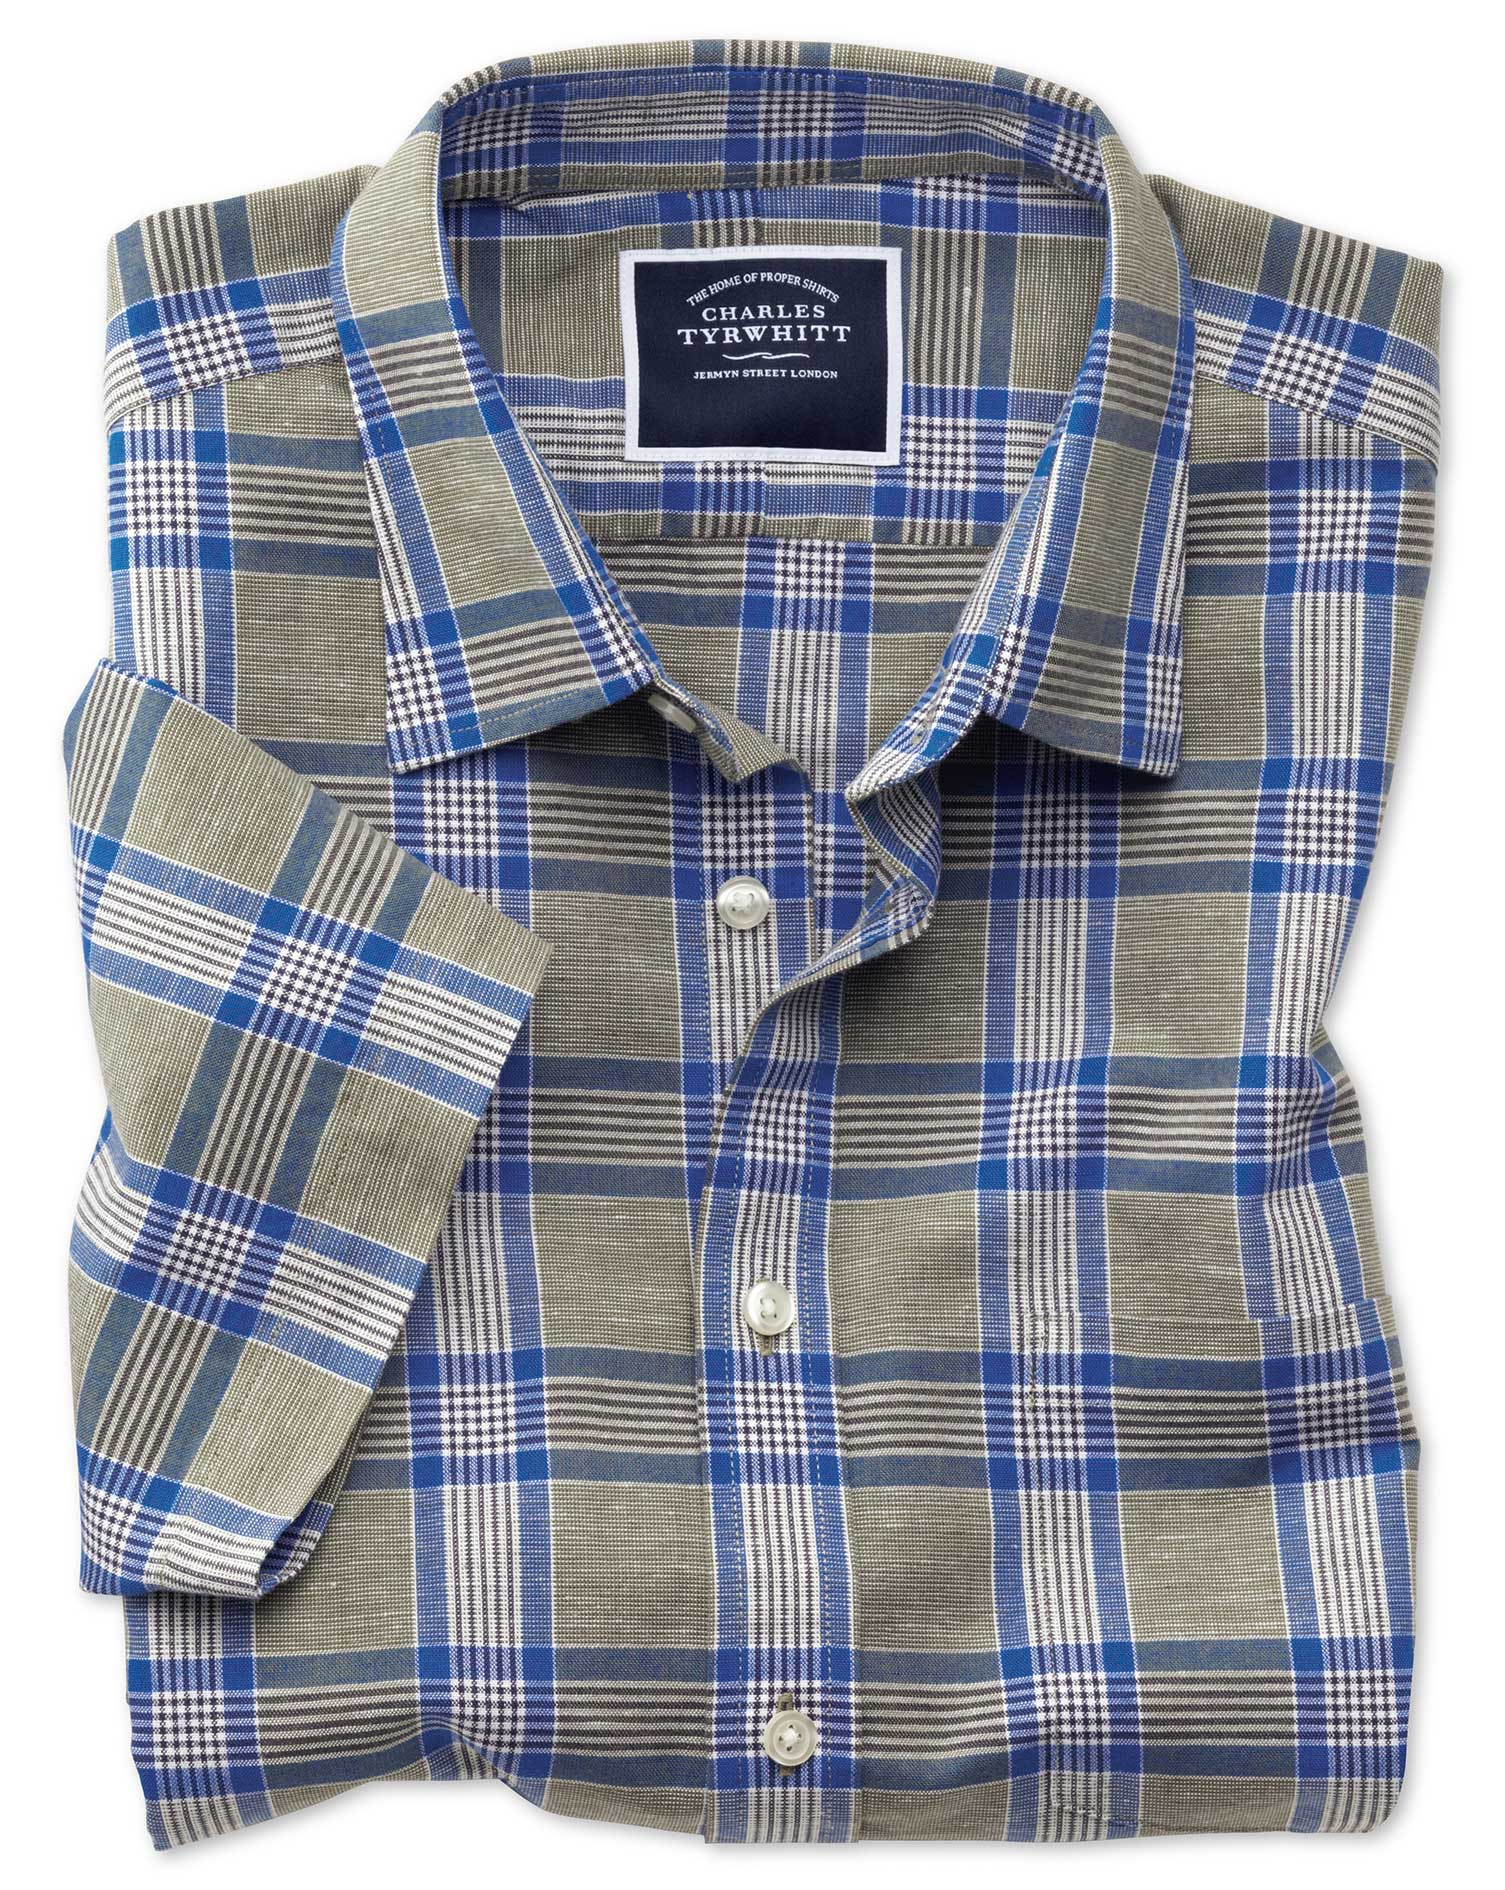 Slim Fit Cotton Linen Short Sleeve Khaki Check Shirt Single Cuff Size Large by Charles Tyrwhitt